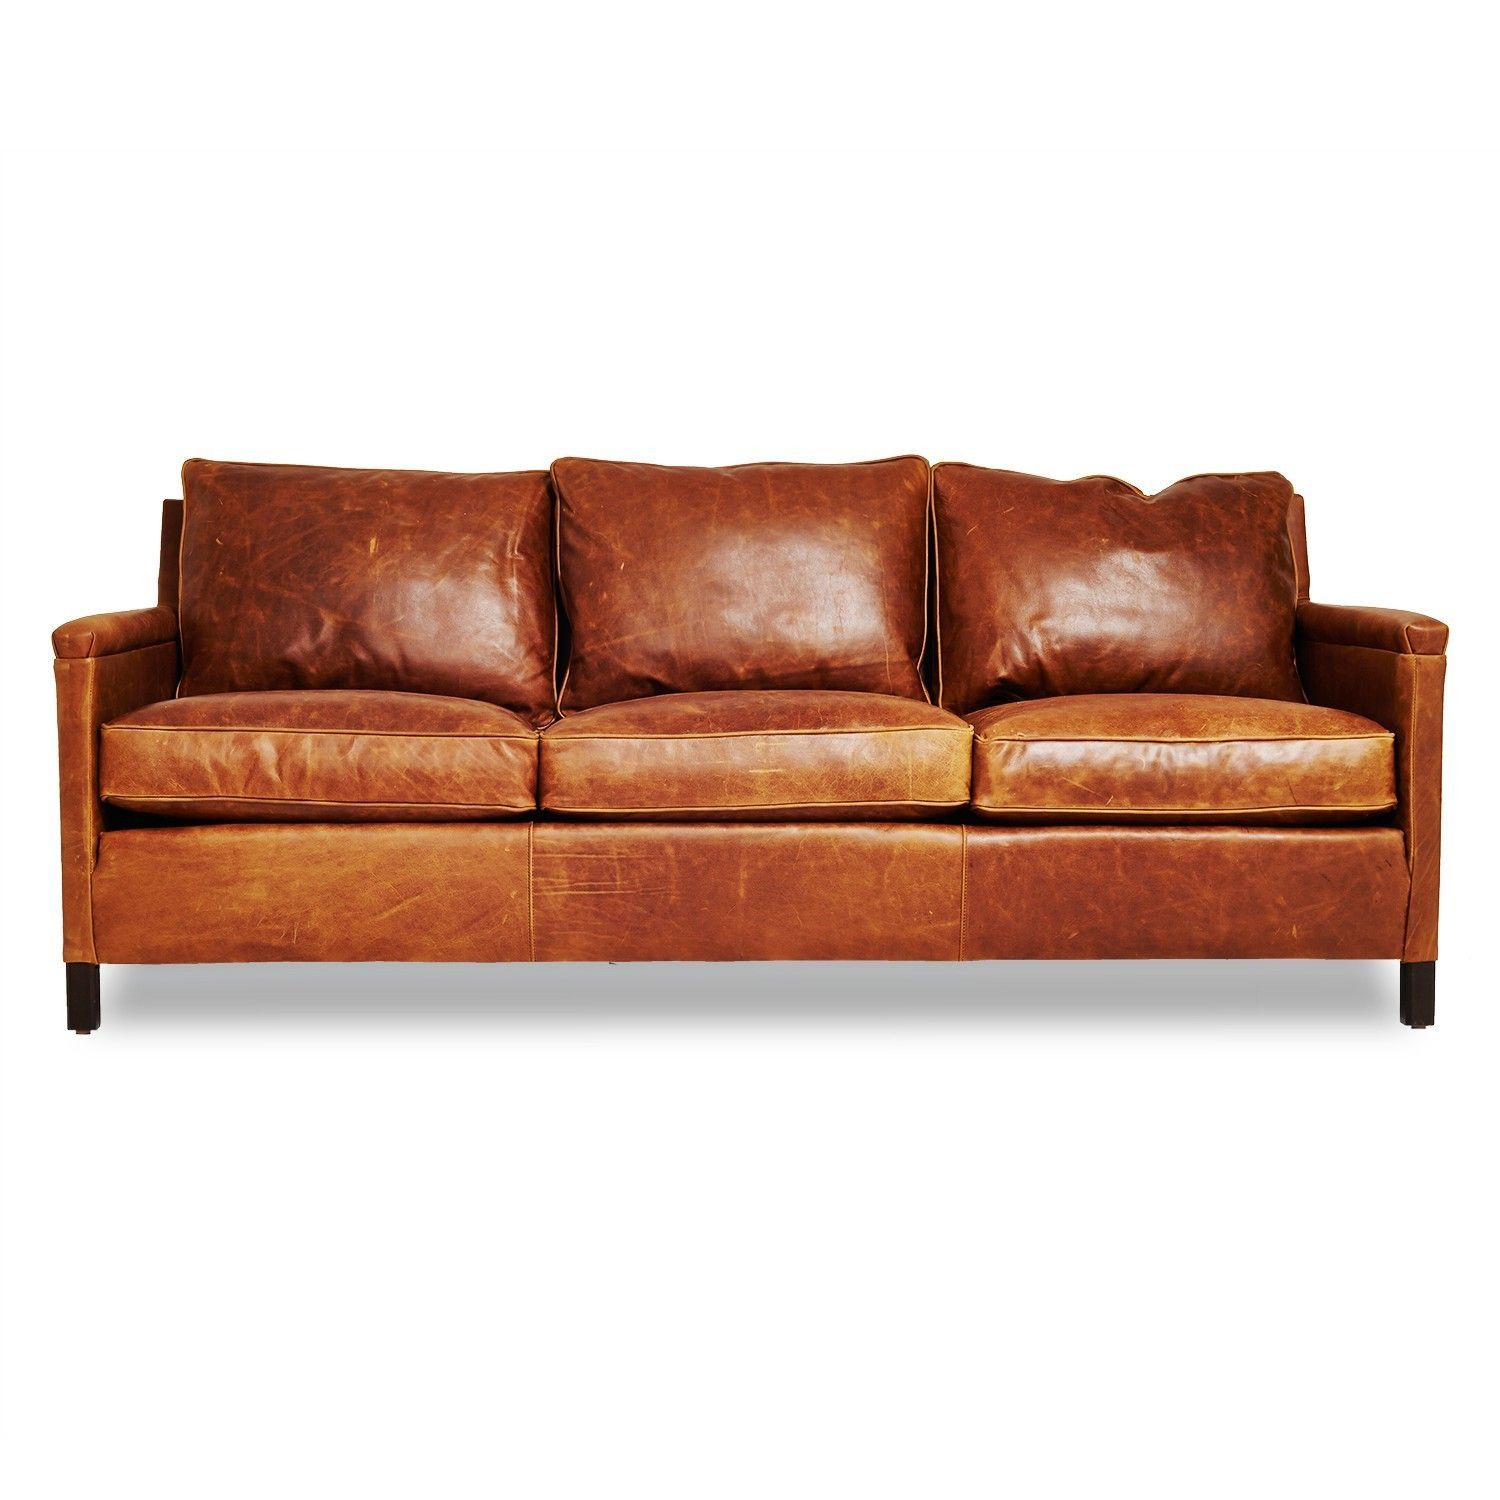 134 Reference Of Brown Faux Leather Sectional Couch In 2020